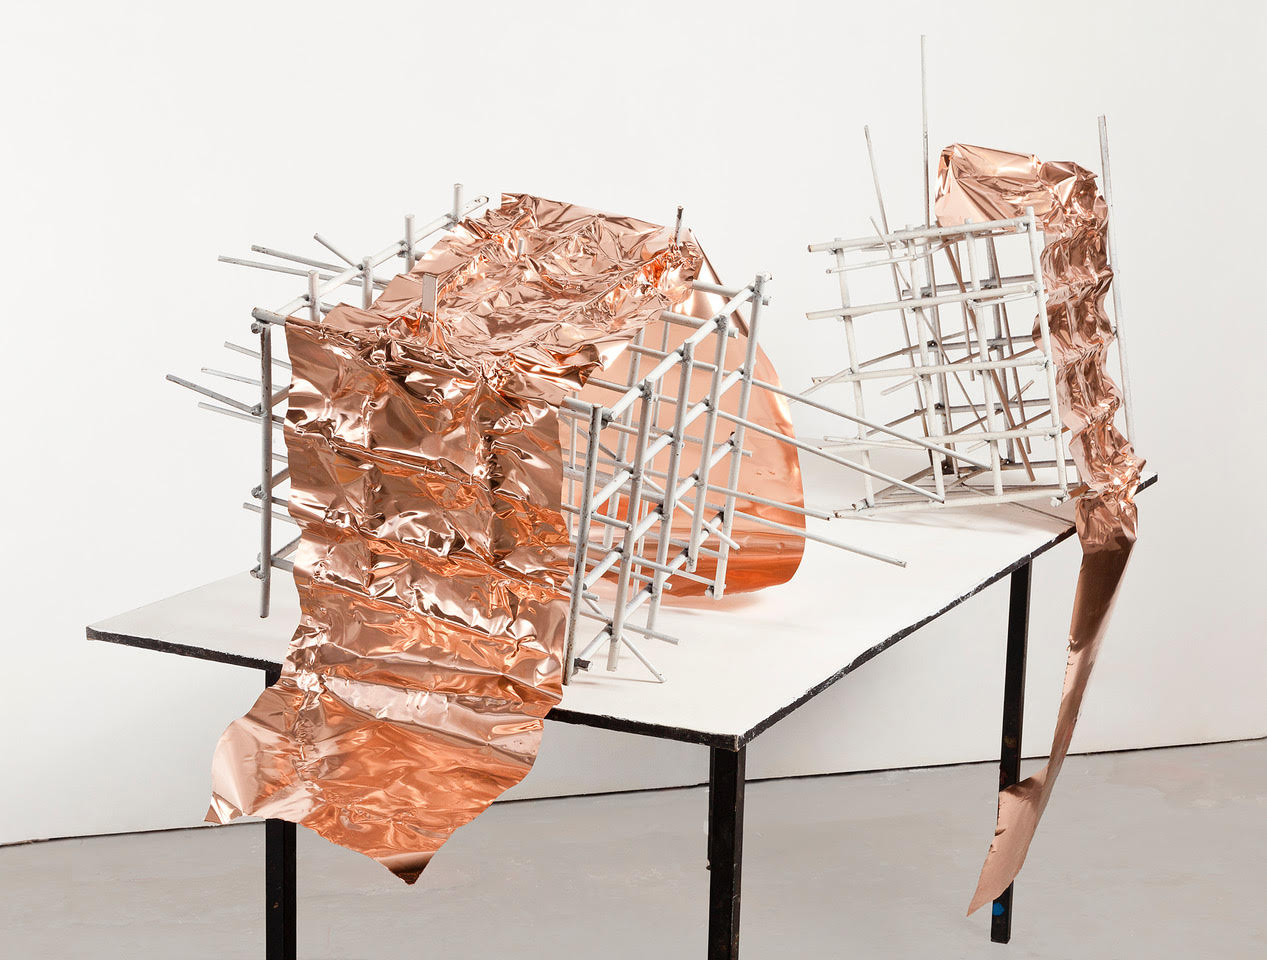 Sketches for the Great Abyss (2018). Steel and copper. Photo by David Bennett